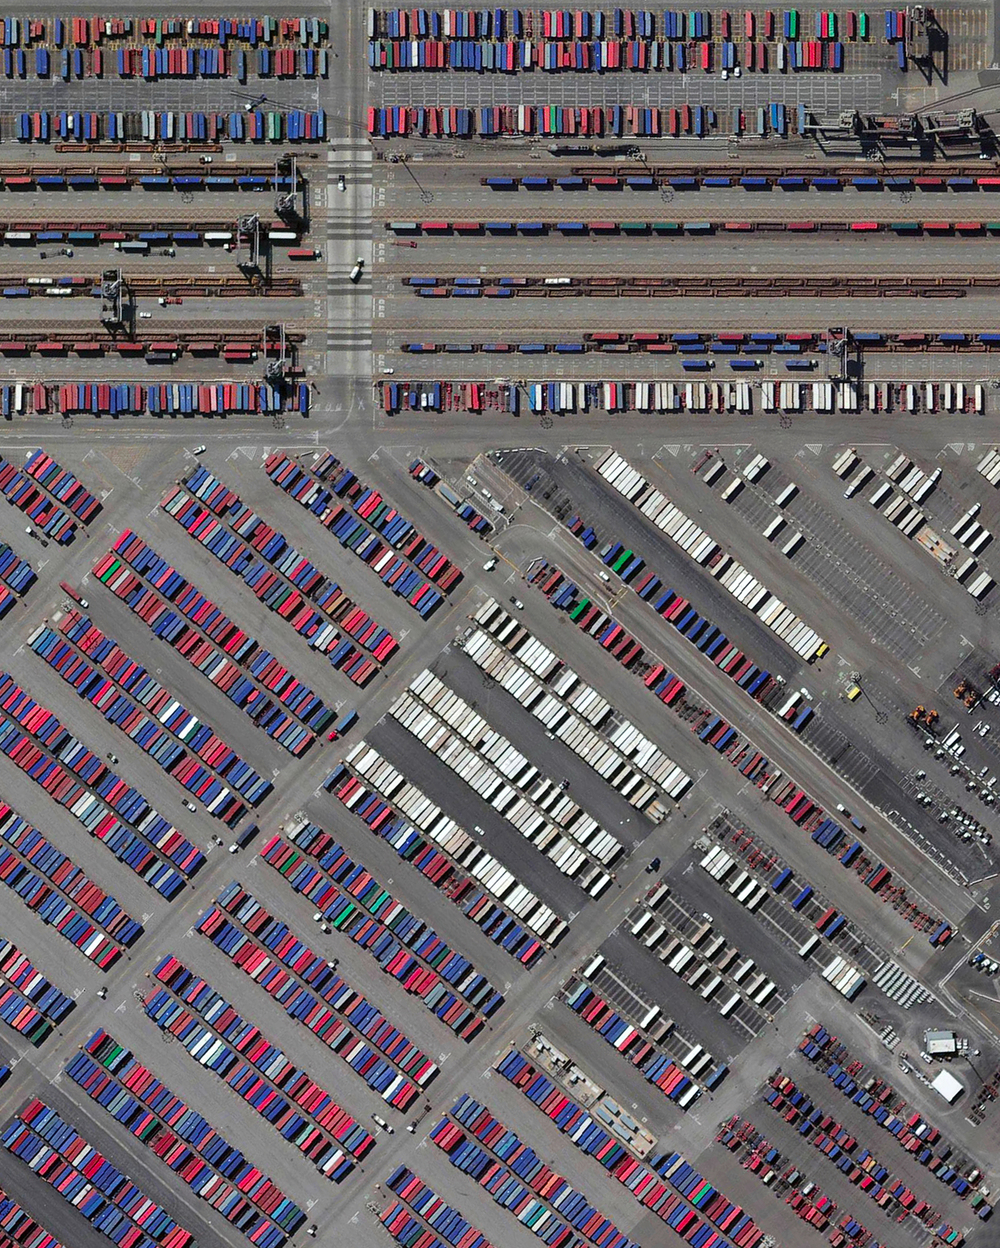 11/8/2015   Port of Los Angeles   Los Angeles, California, USA  33°43′45″N 118°15′43″W     The Port of Los Angeles is the busiest container port in the United States, but only the 16th-busiest in the world. Approximately $1.2 billion worth of cargo comes through the facility each day and more than 165 million metric revenue tons of cargo are moved here each year. The most-imported types of goods are furniture, automobile parts, apparel, electronic products, and footwear.